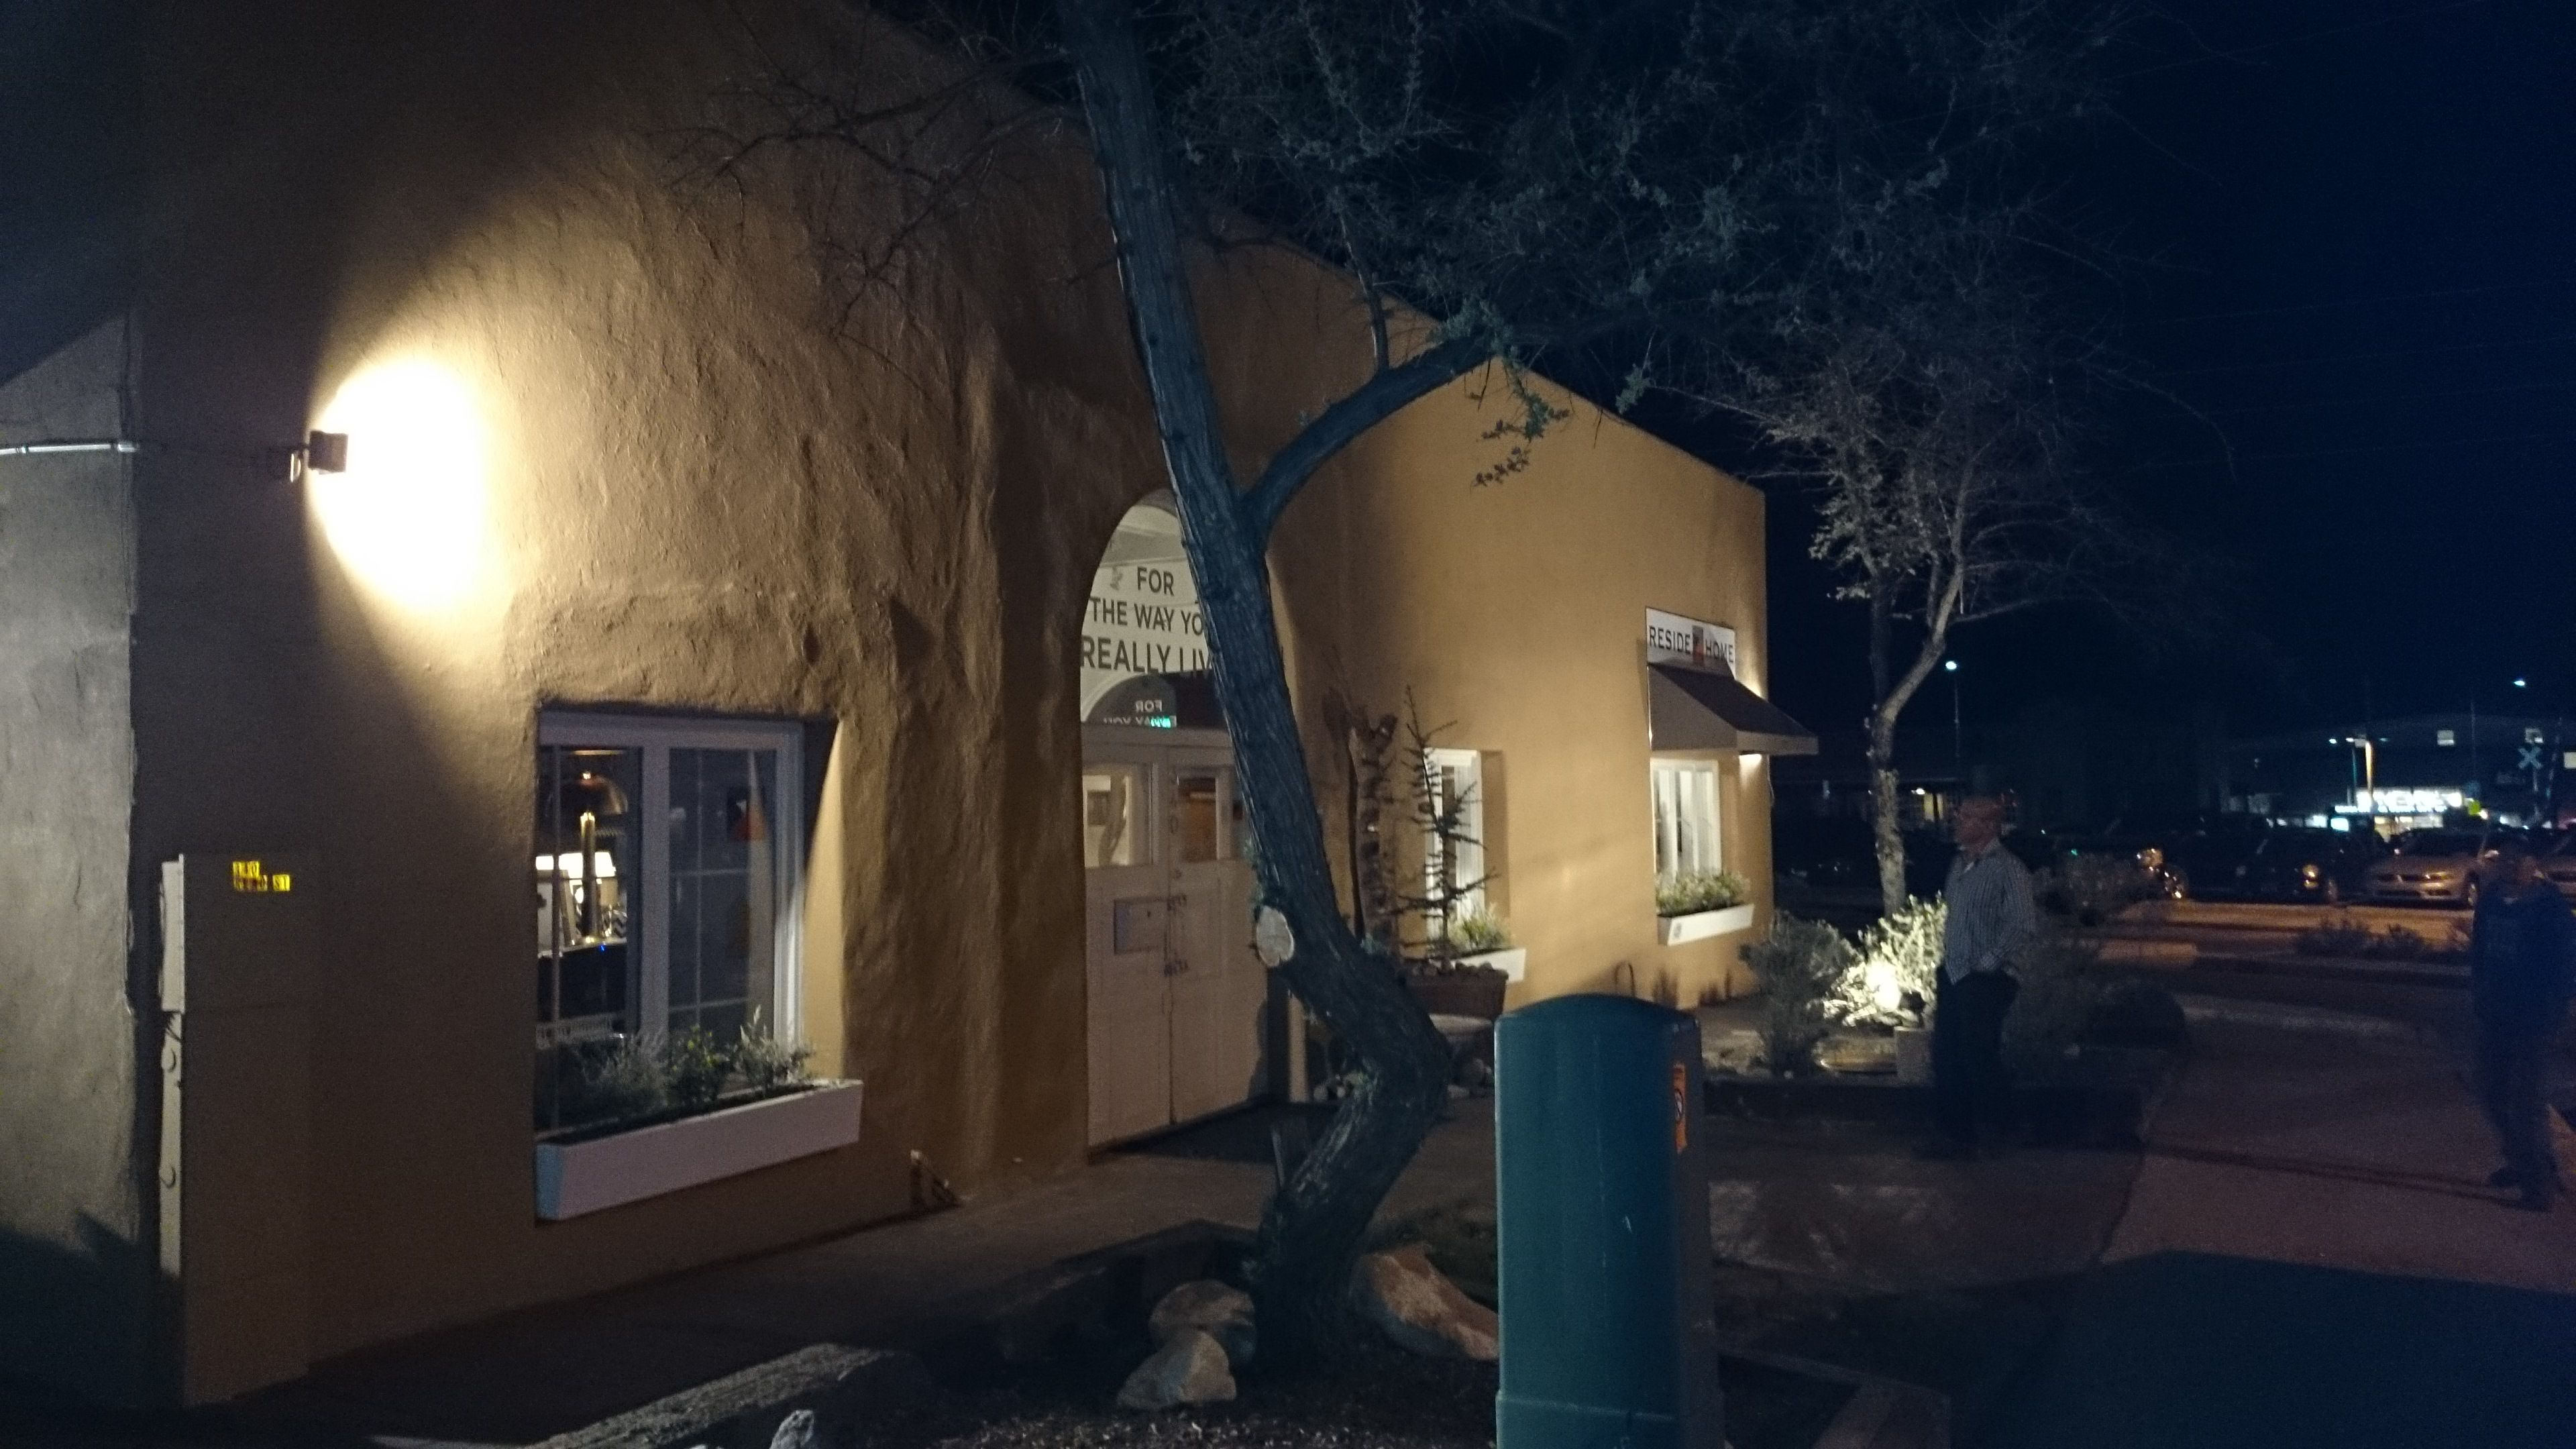 Professional lighting done by the electrical wiring experts at Live Wire in Littleton, CO